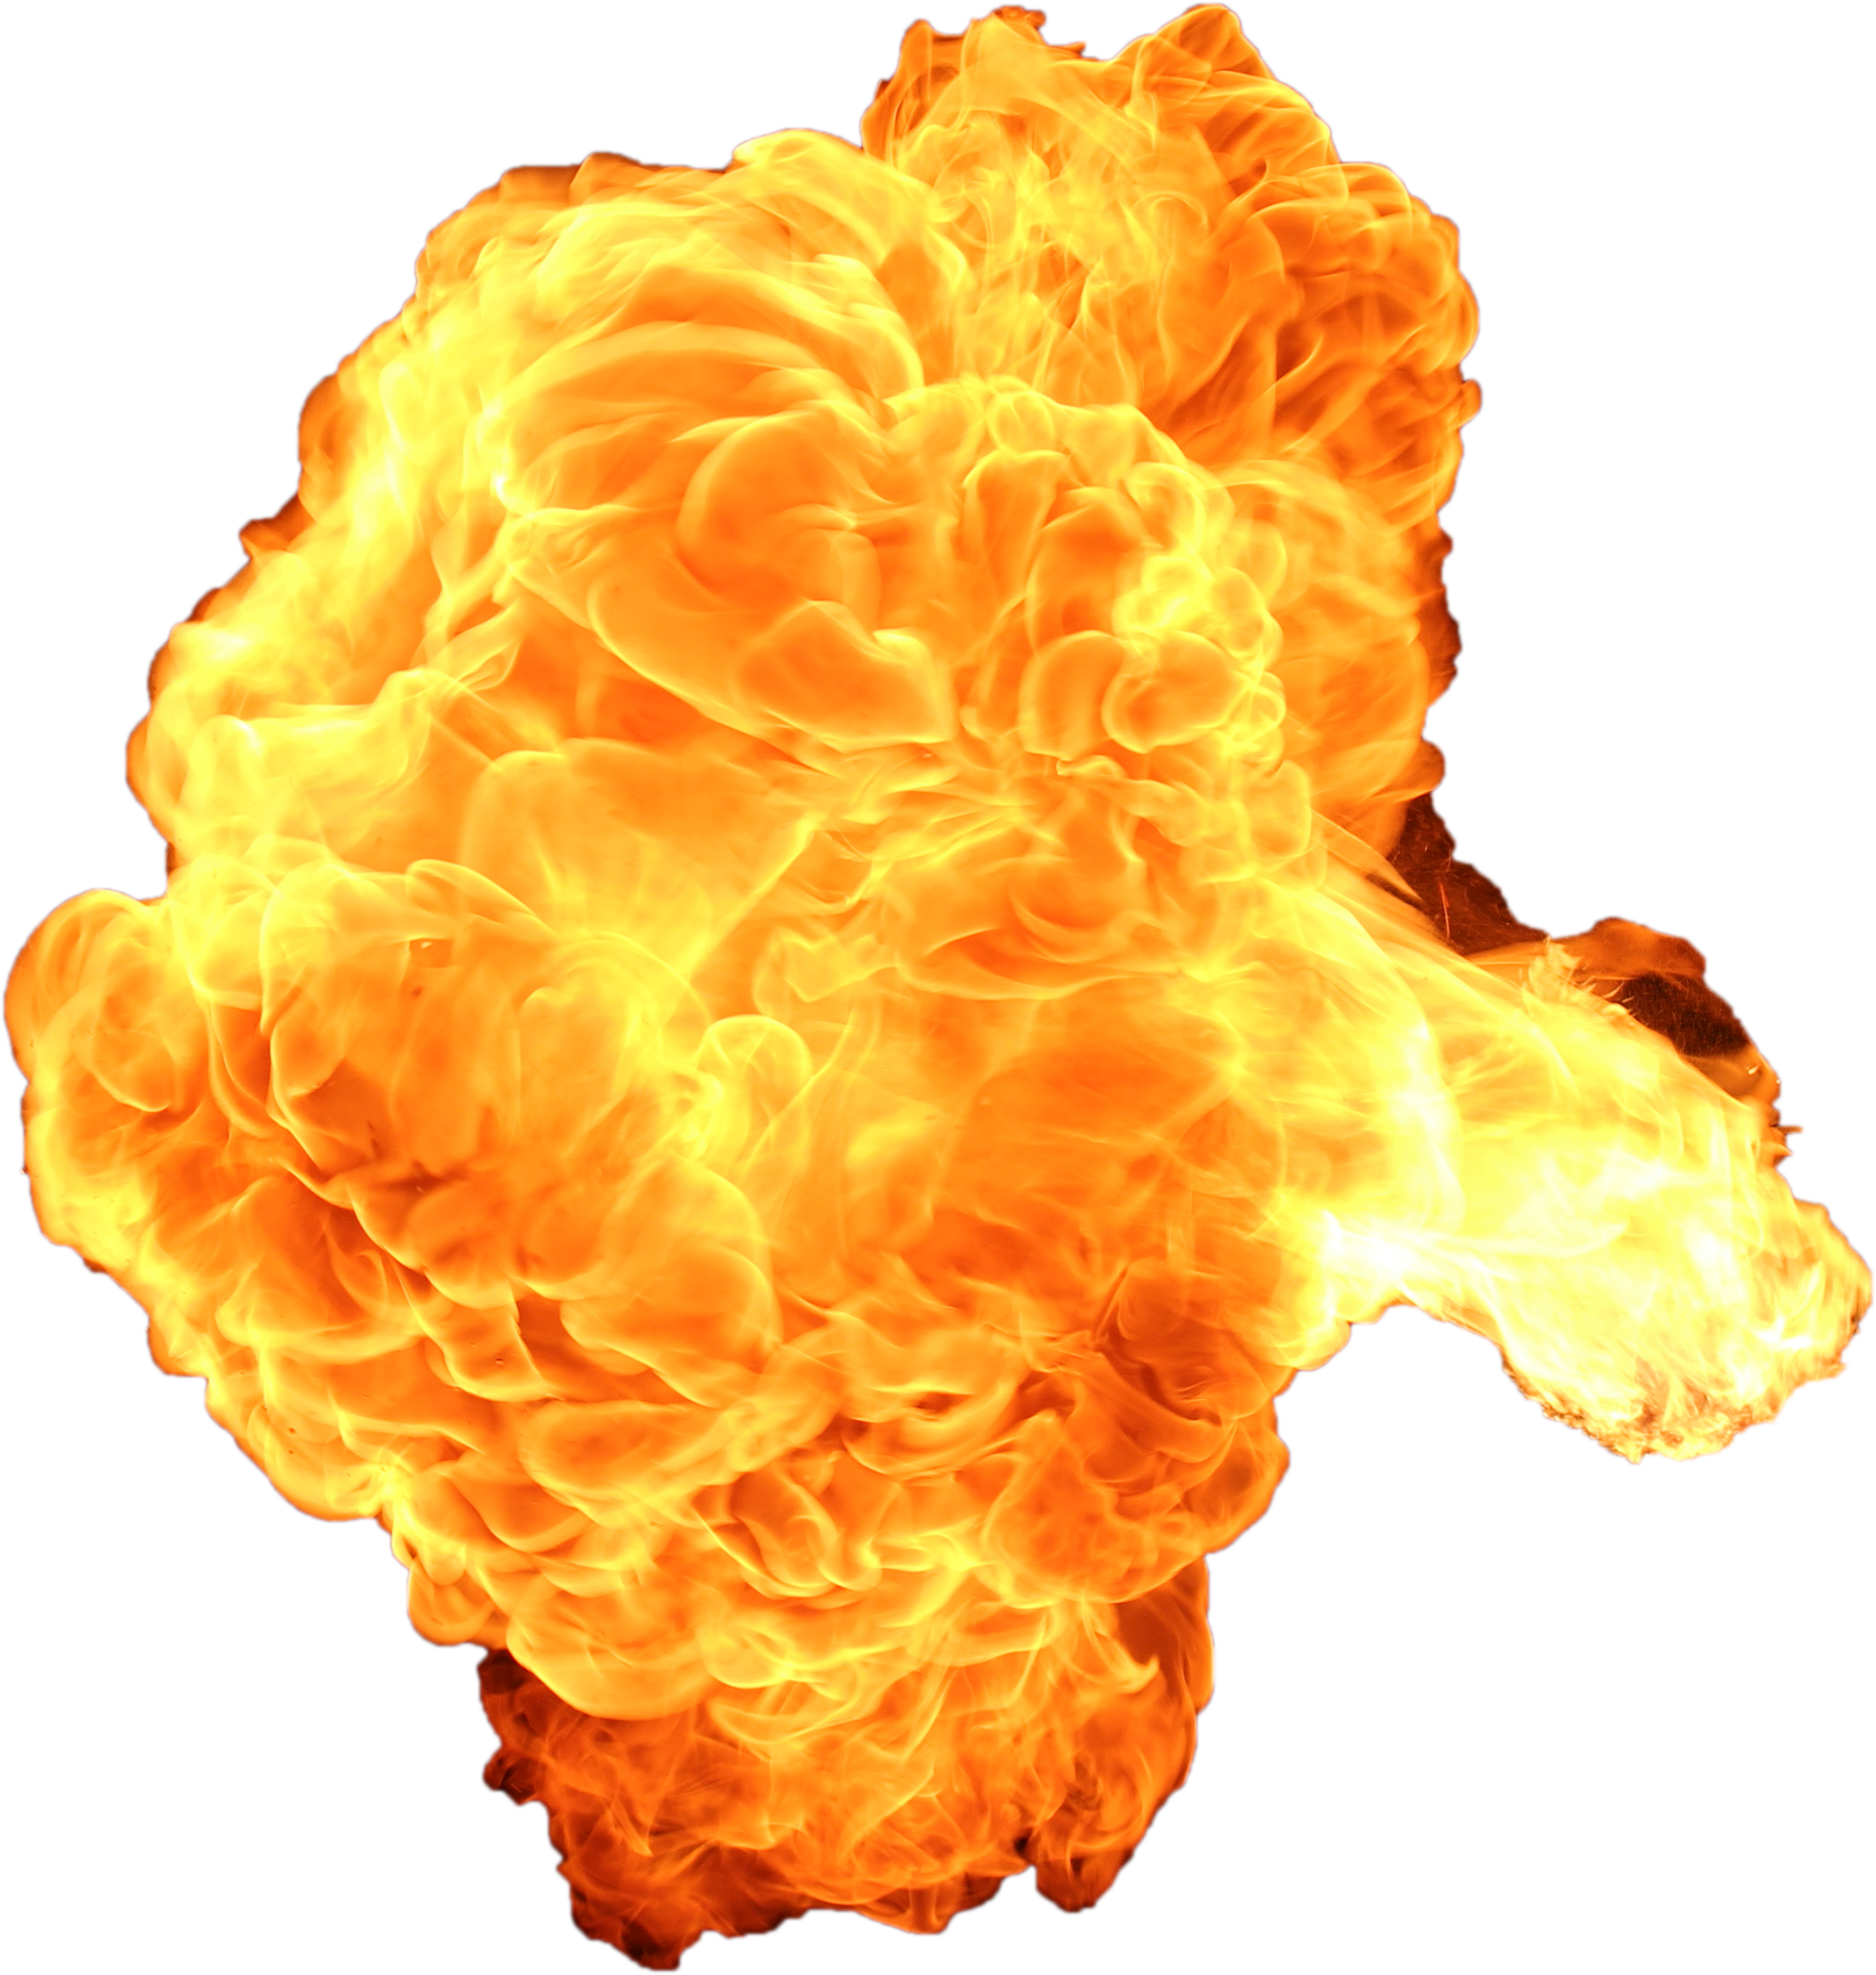 Yellow smoke png. Big explosion with fire